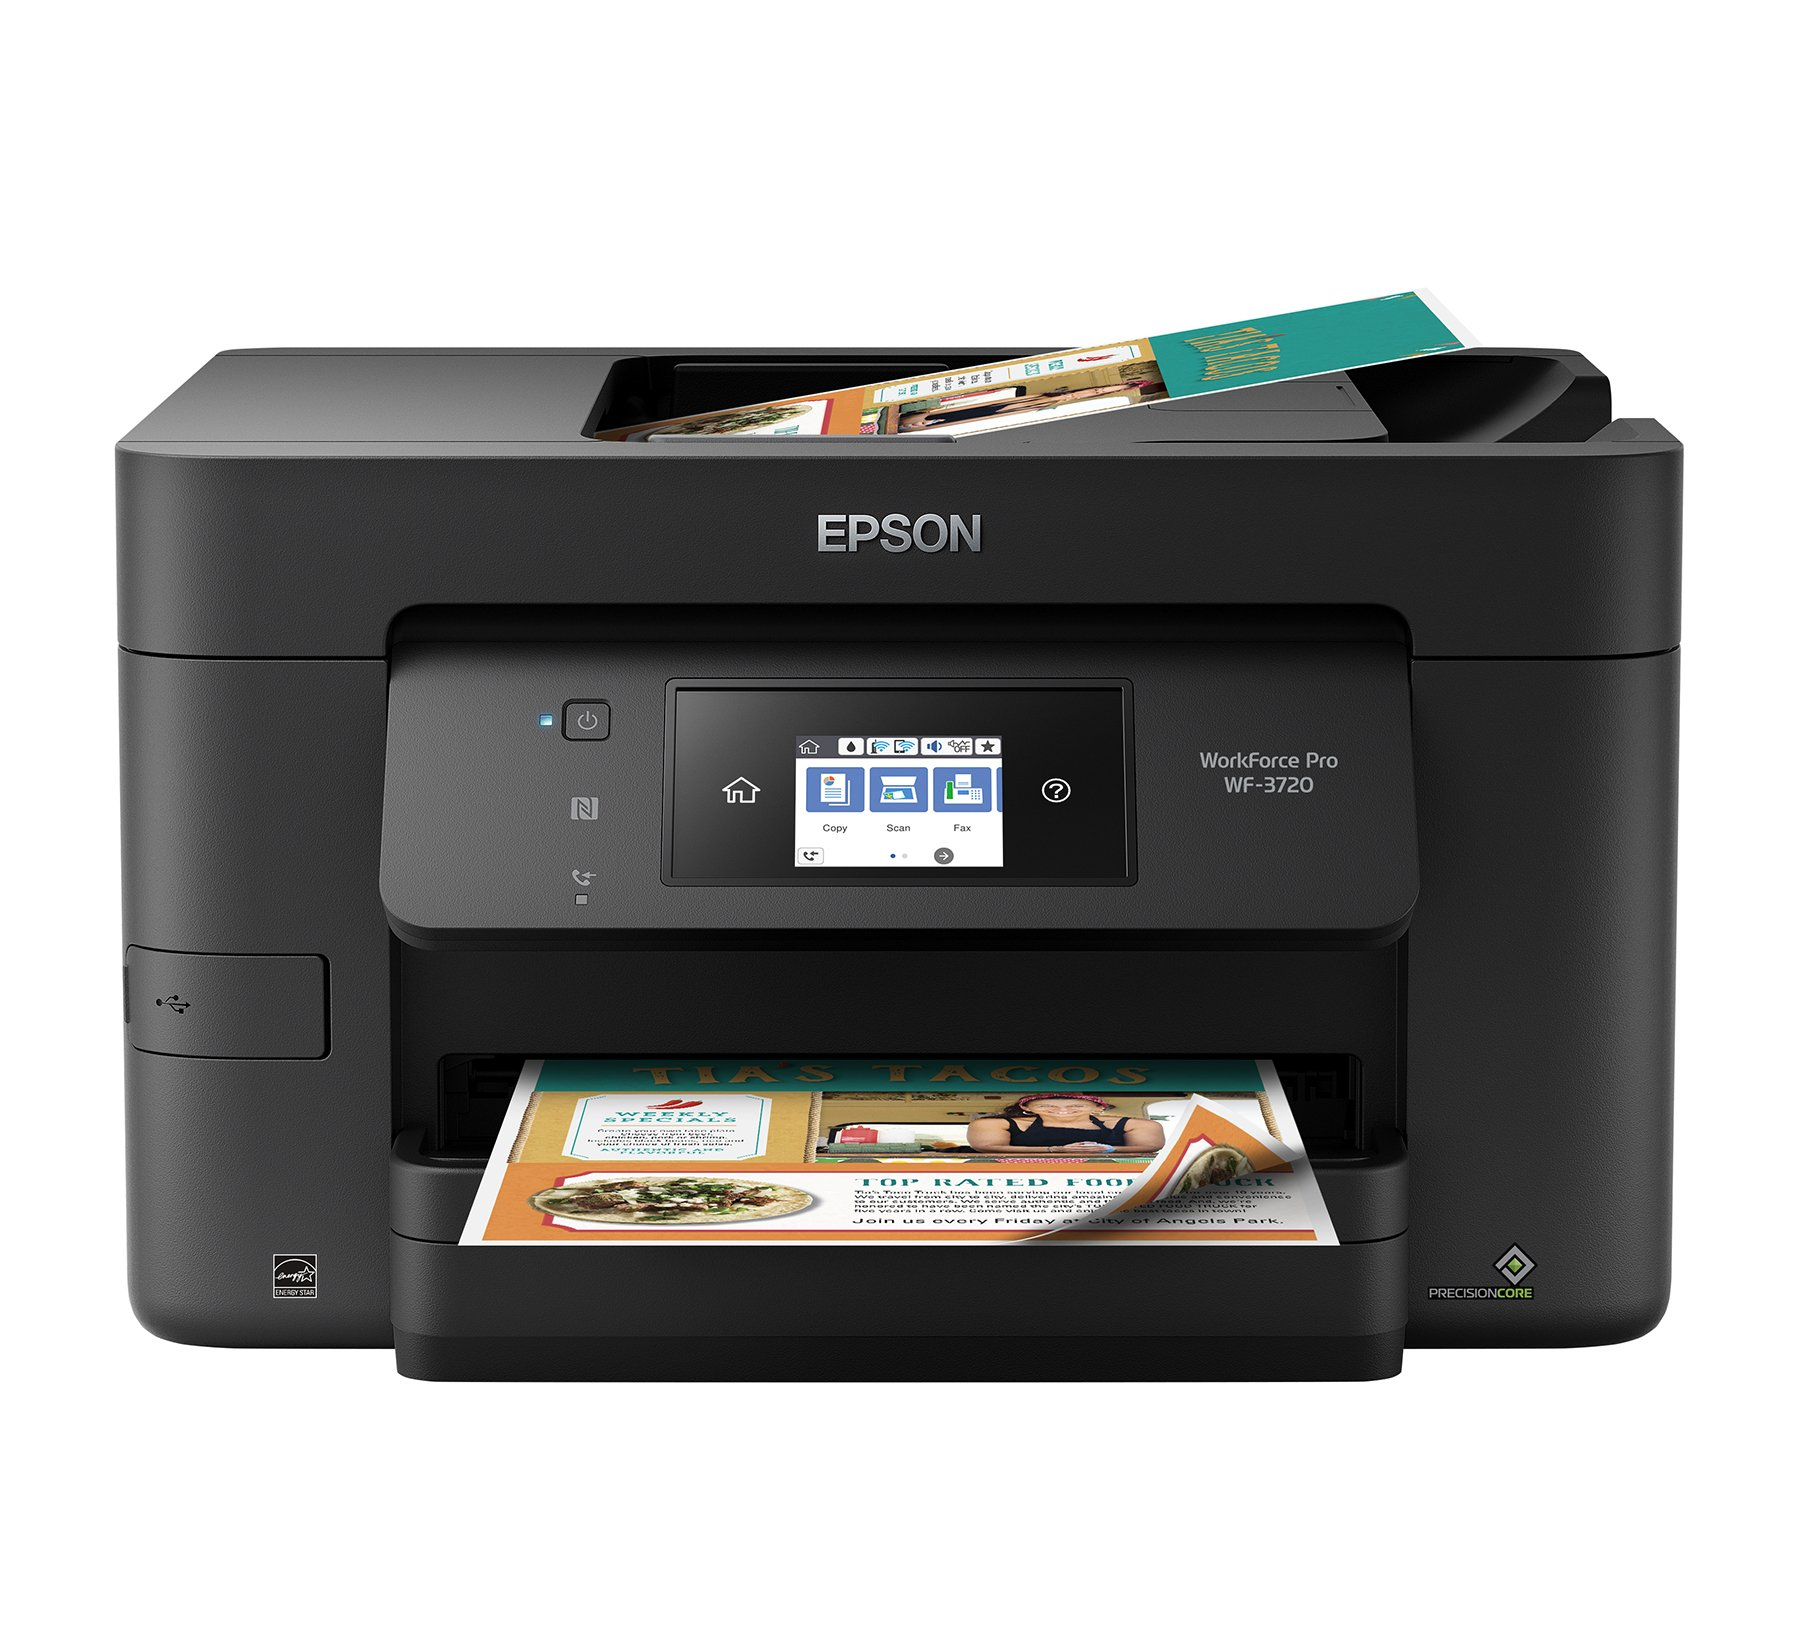 Epson WorkForce Pro WF-3720 Wireless All-in-One Color Inkjet Printer, Copier, Scanner with Wi-Fi Direct by Epson